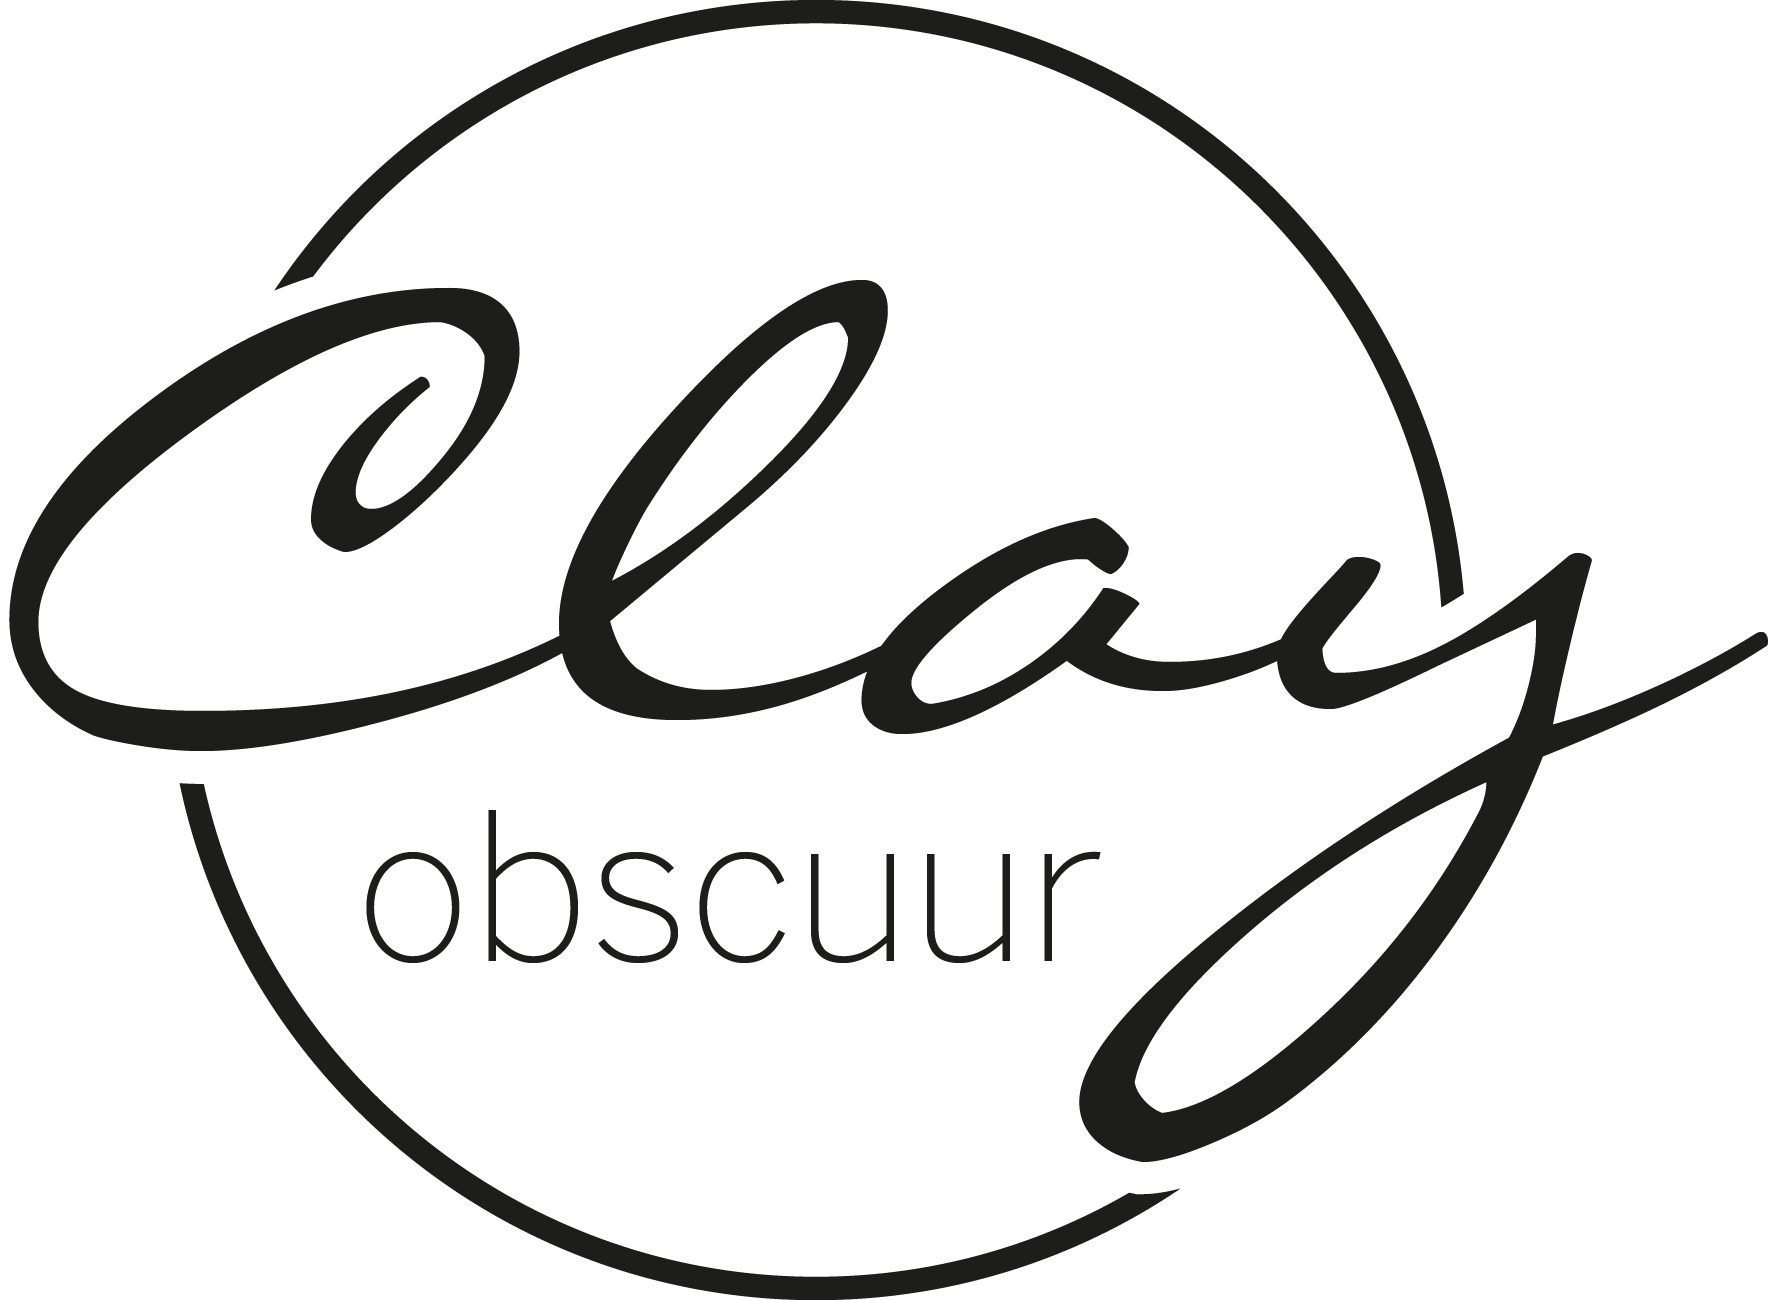 clay-obscuur